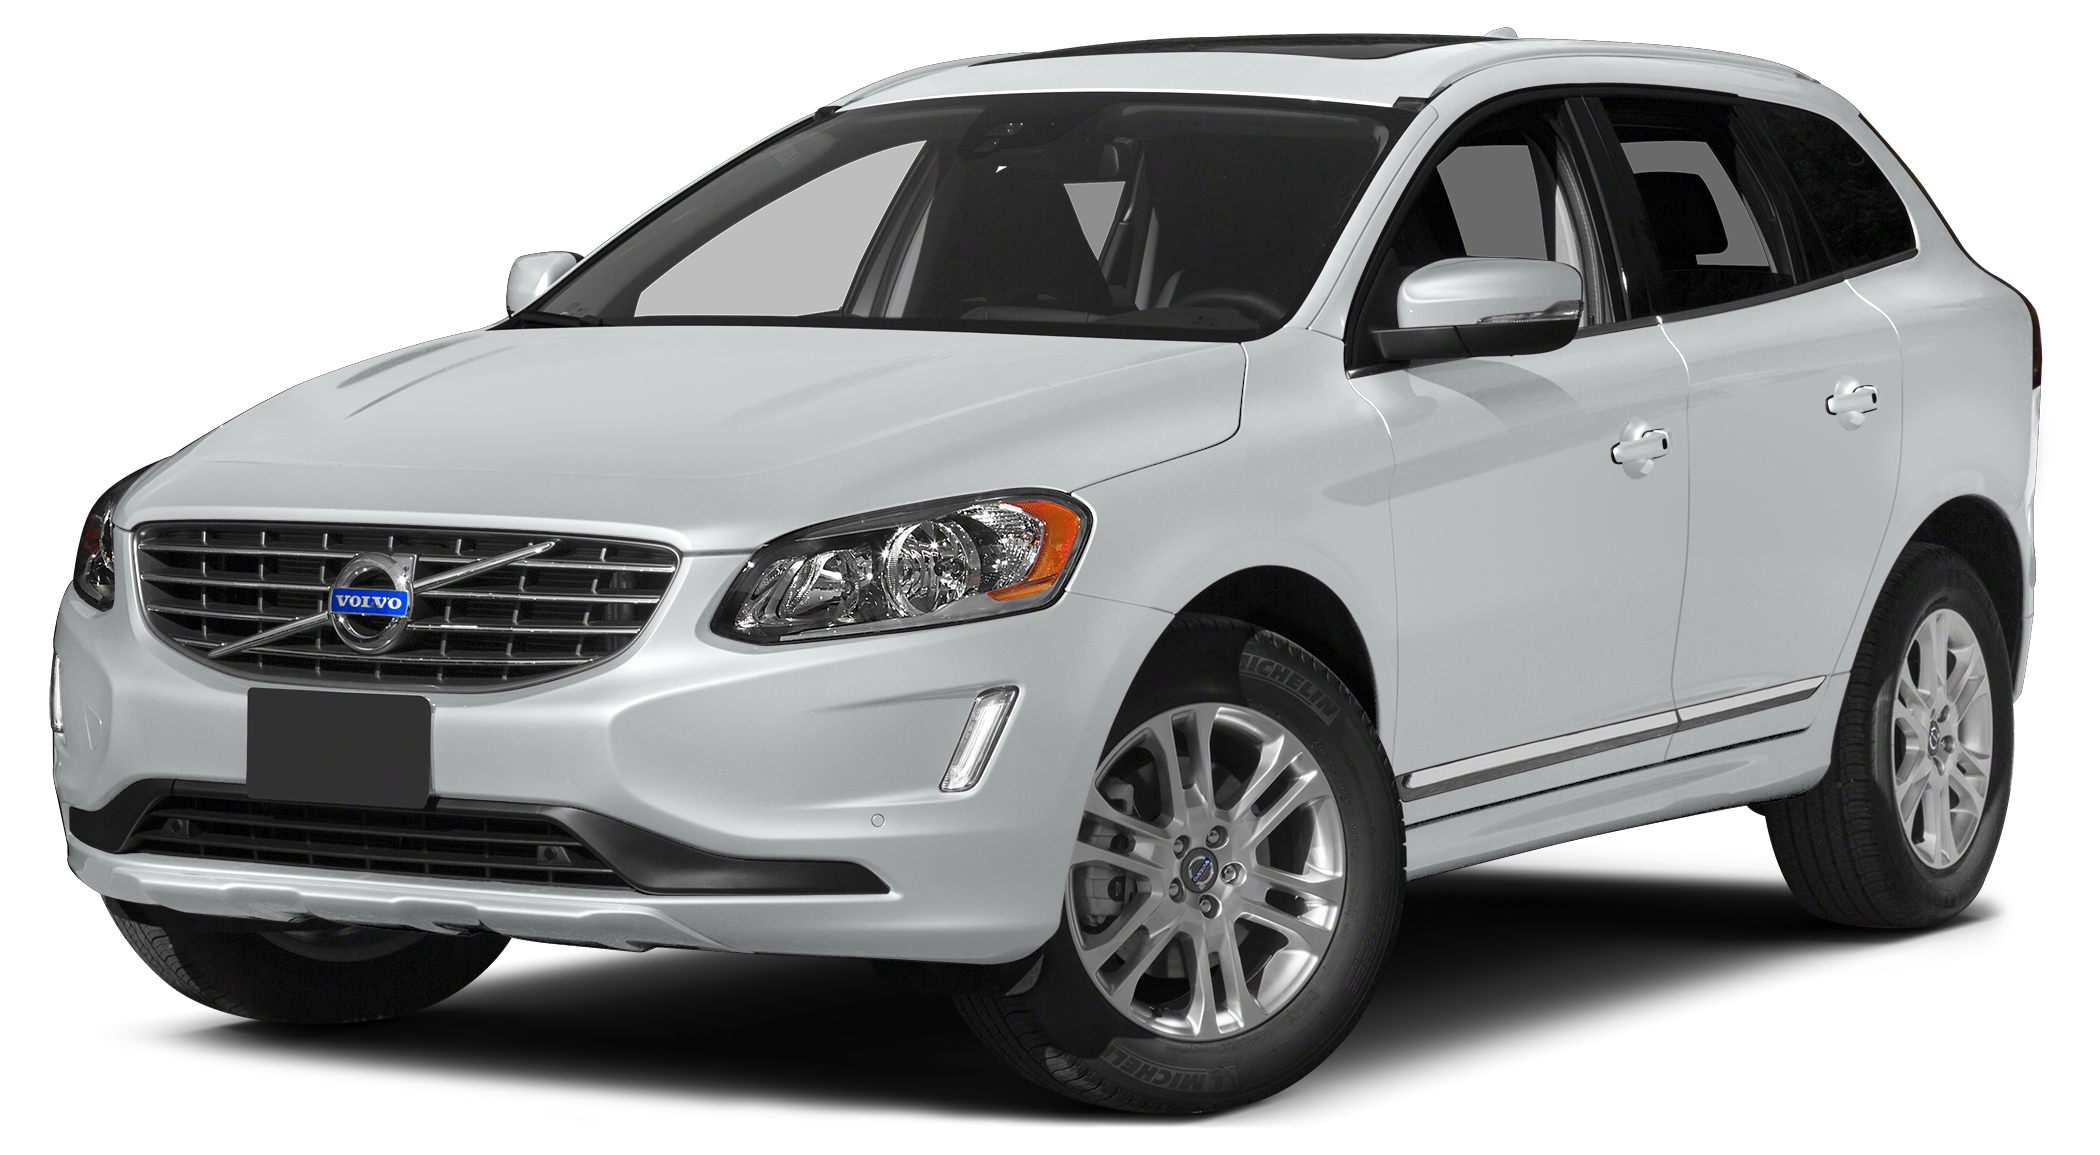 2015 Volvo XC60 T5 Premier New Arrival Navigation Auto Climate Control Leather Steering Wheel S